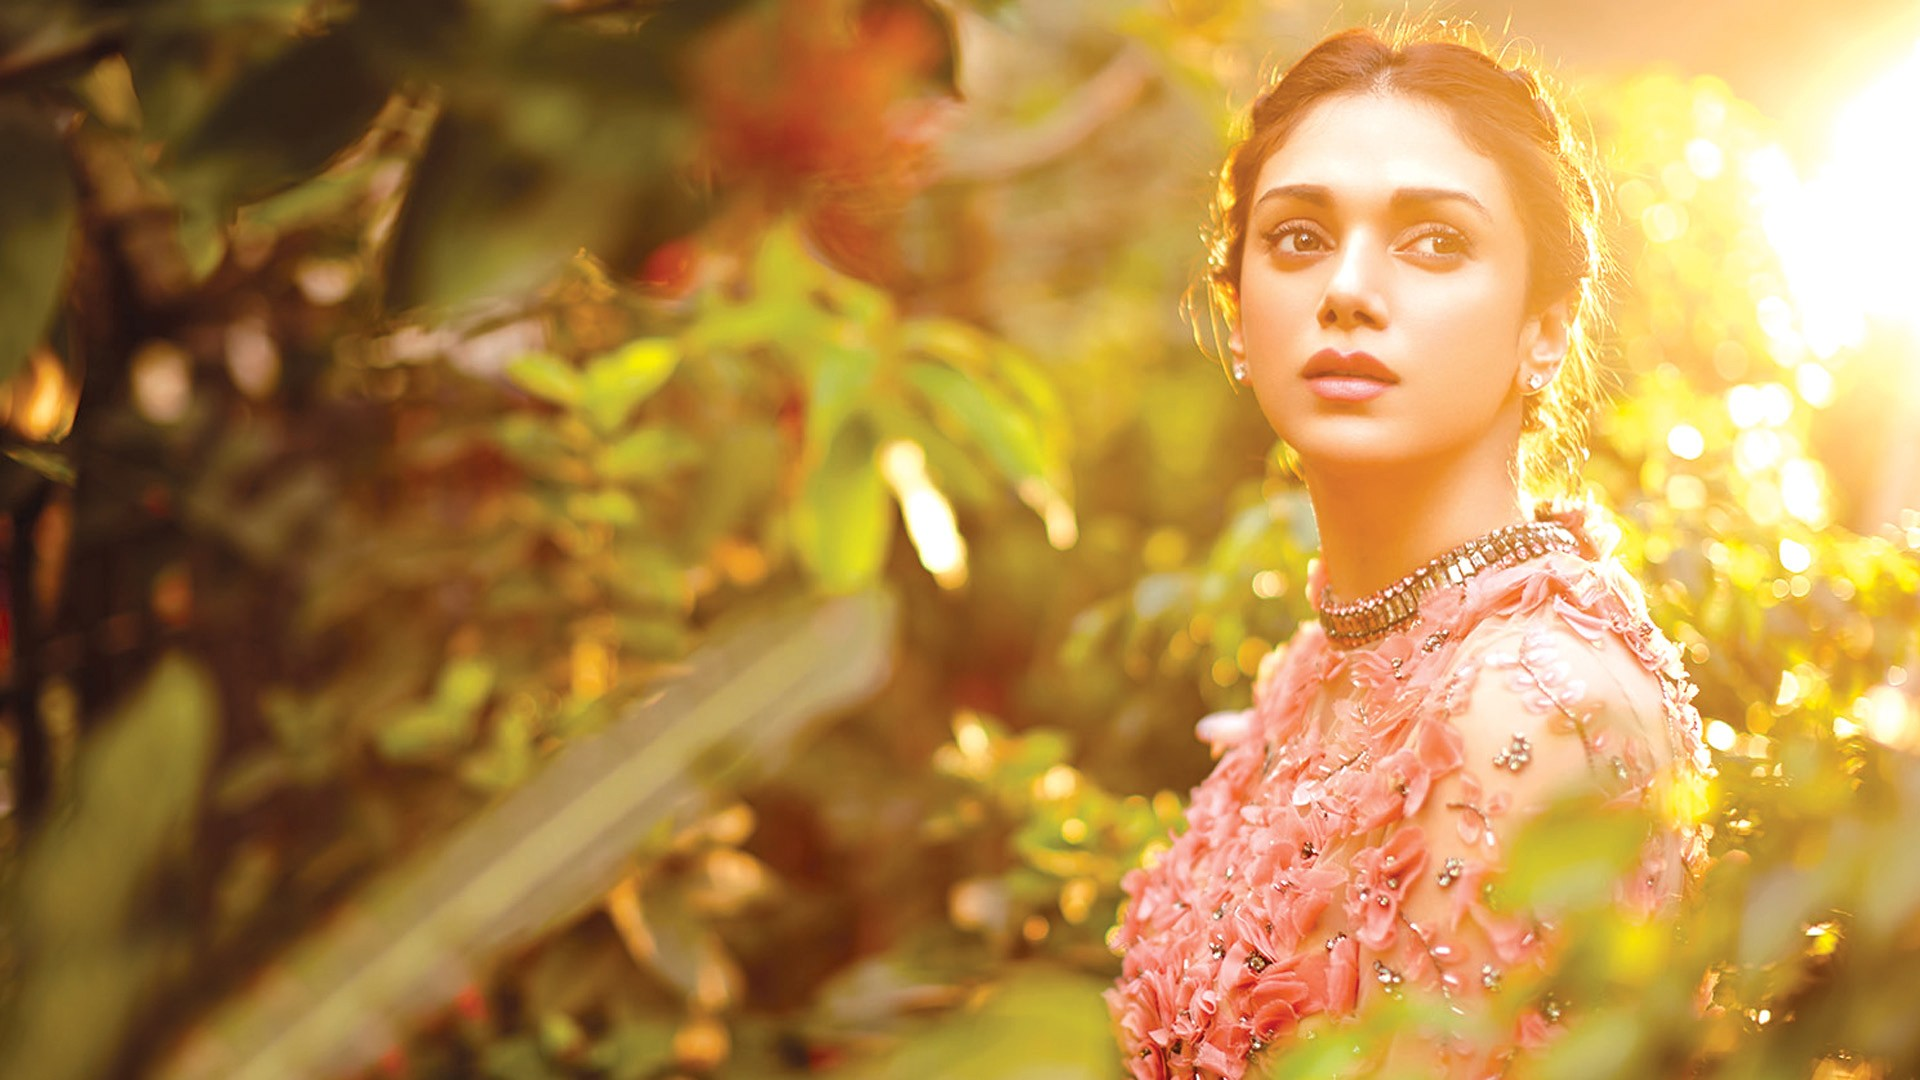 Cute Iphone Wallpapers Hd Actress Aditi Rao Hydari Wallpapers Hd Wallpapers Id